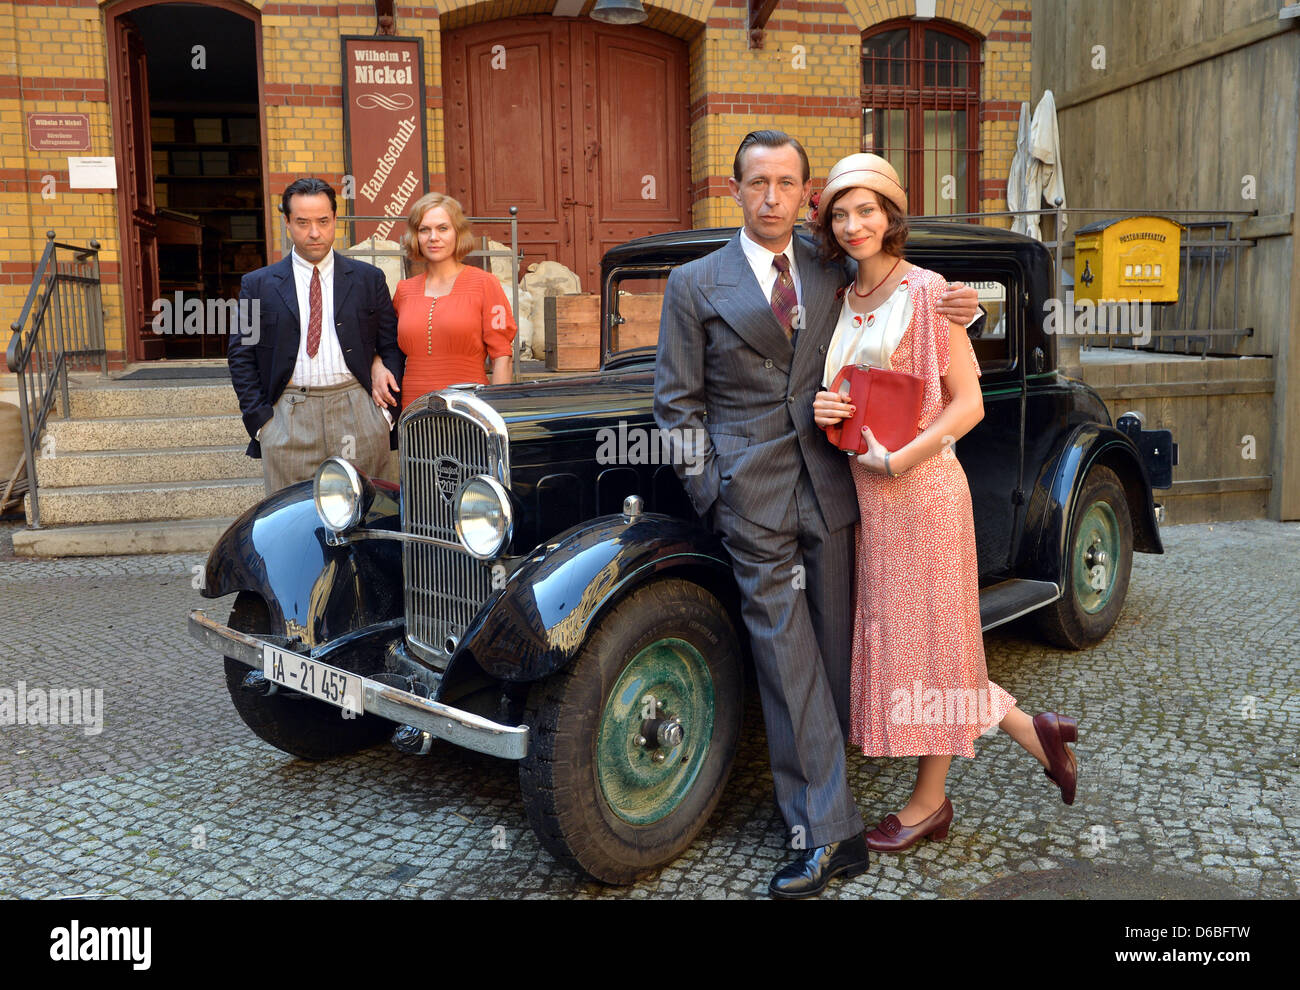 Actors Jan Josef Liefers (L-R), Anna Loos, Sven Lehmann and Claudia Eisinger pose at the set for the historic TV - Stock Image